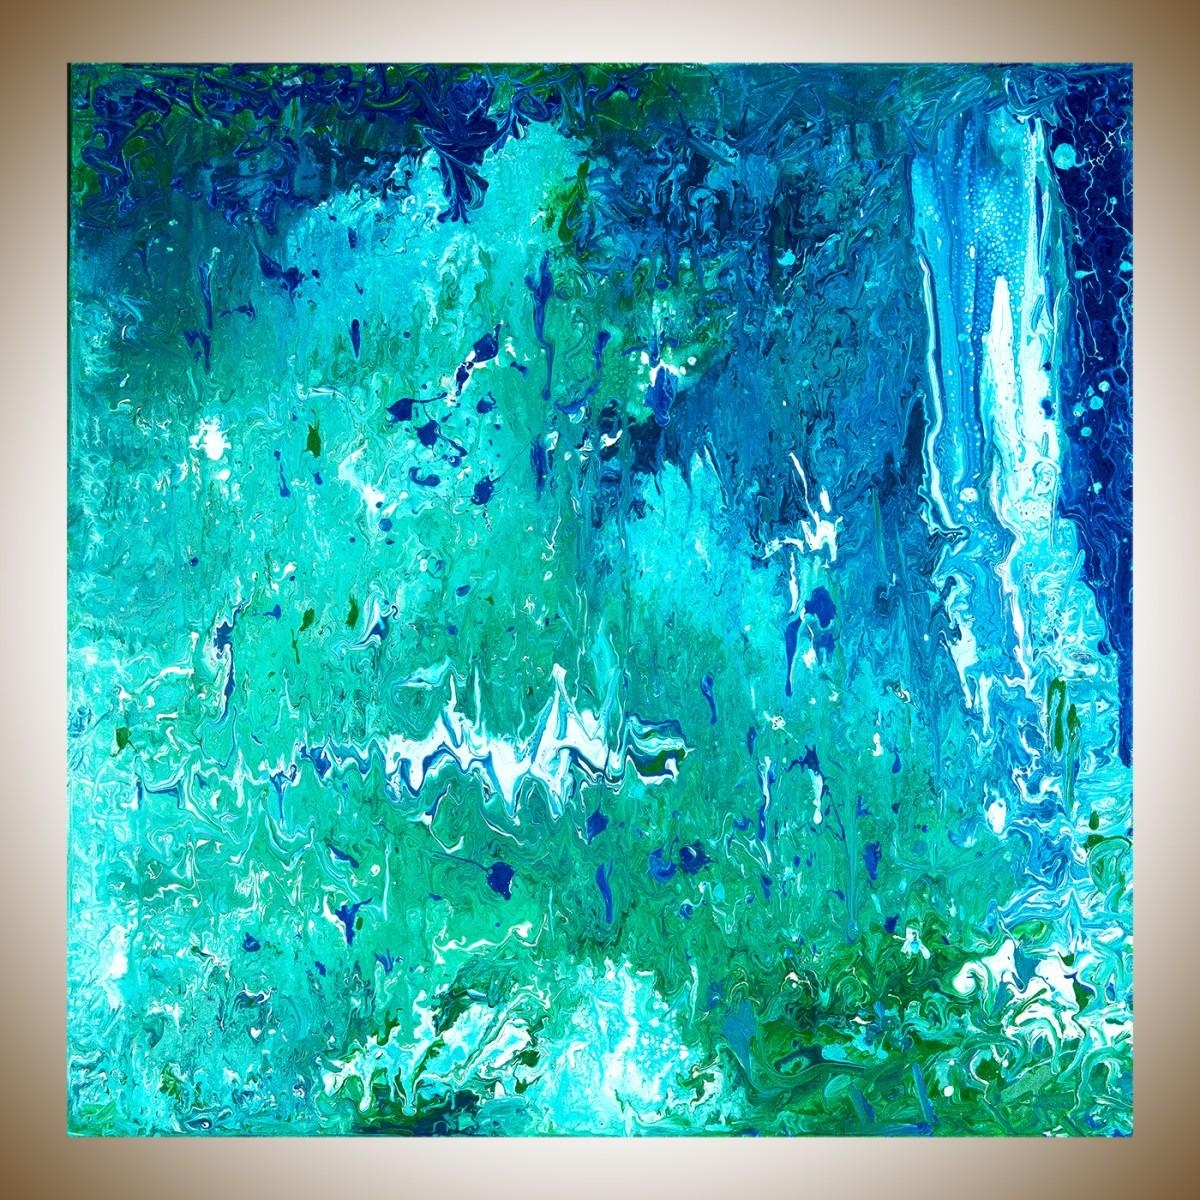 "Spring Ribbonqiqigallery 72"" X 24"" Extra Large Wall Art In Blue And Green Wall Art (Image 17 of 20)"